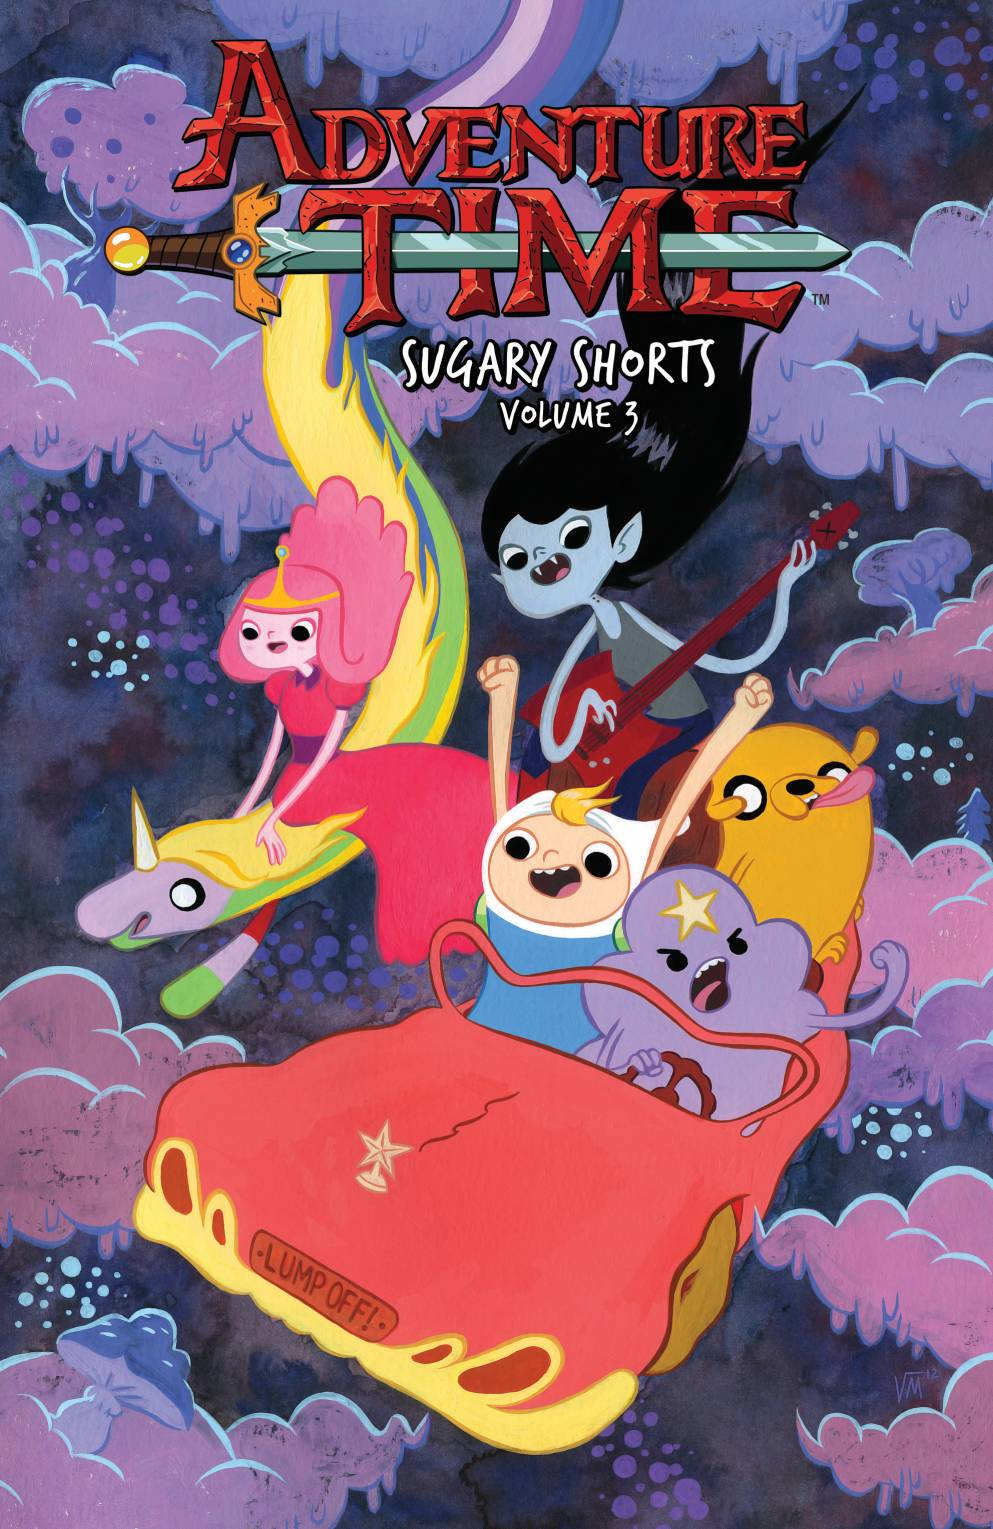 ADVENTURE TIME SUGARY SHORTS TP 3.jpg